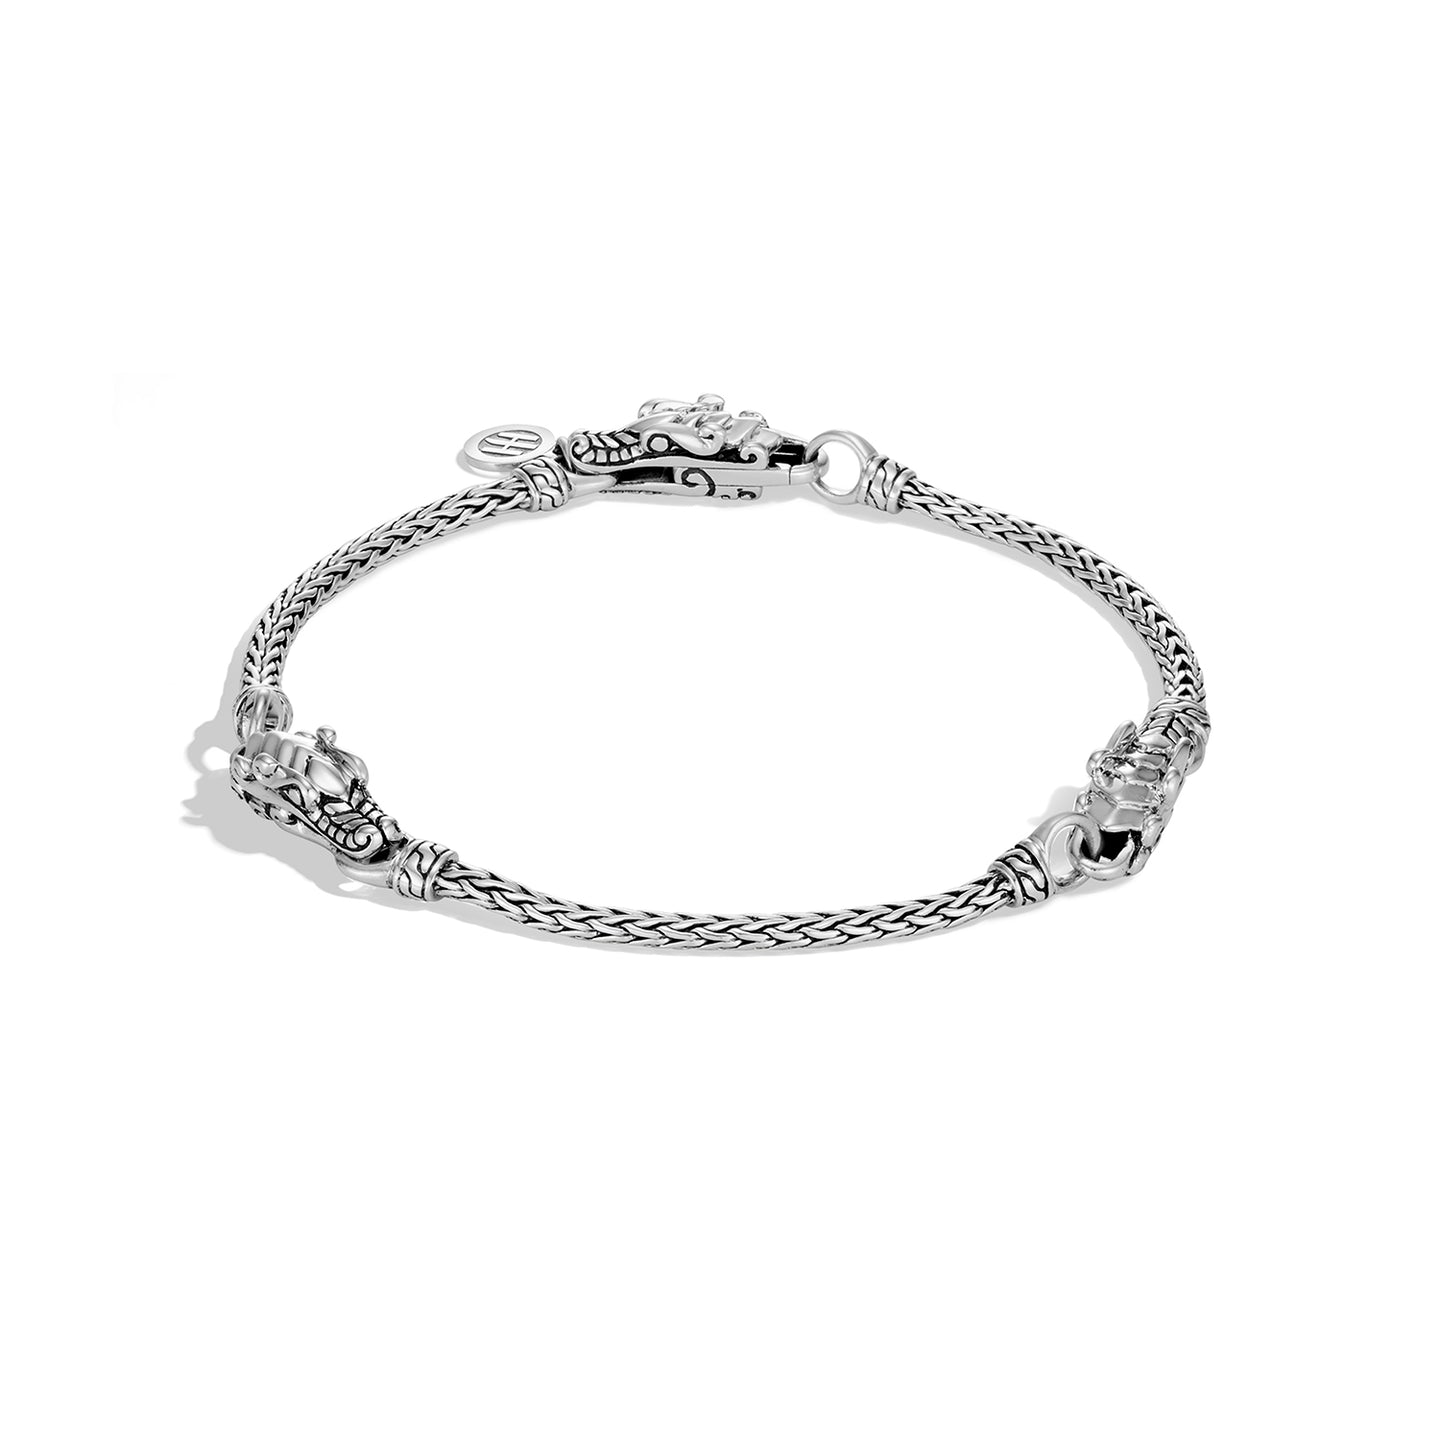 John Hardy Legends Sterling Silver Naga Triple Station Bracelet